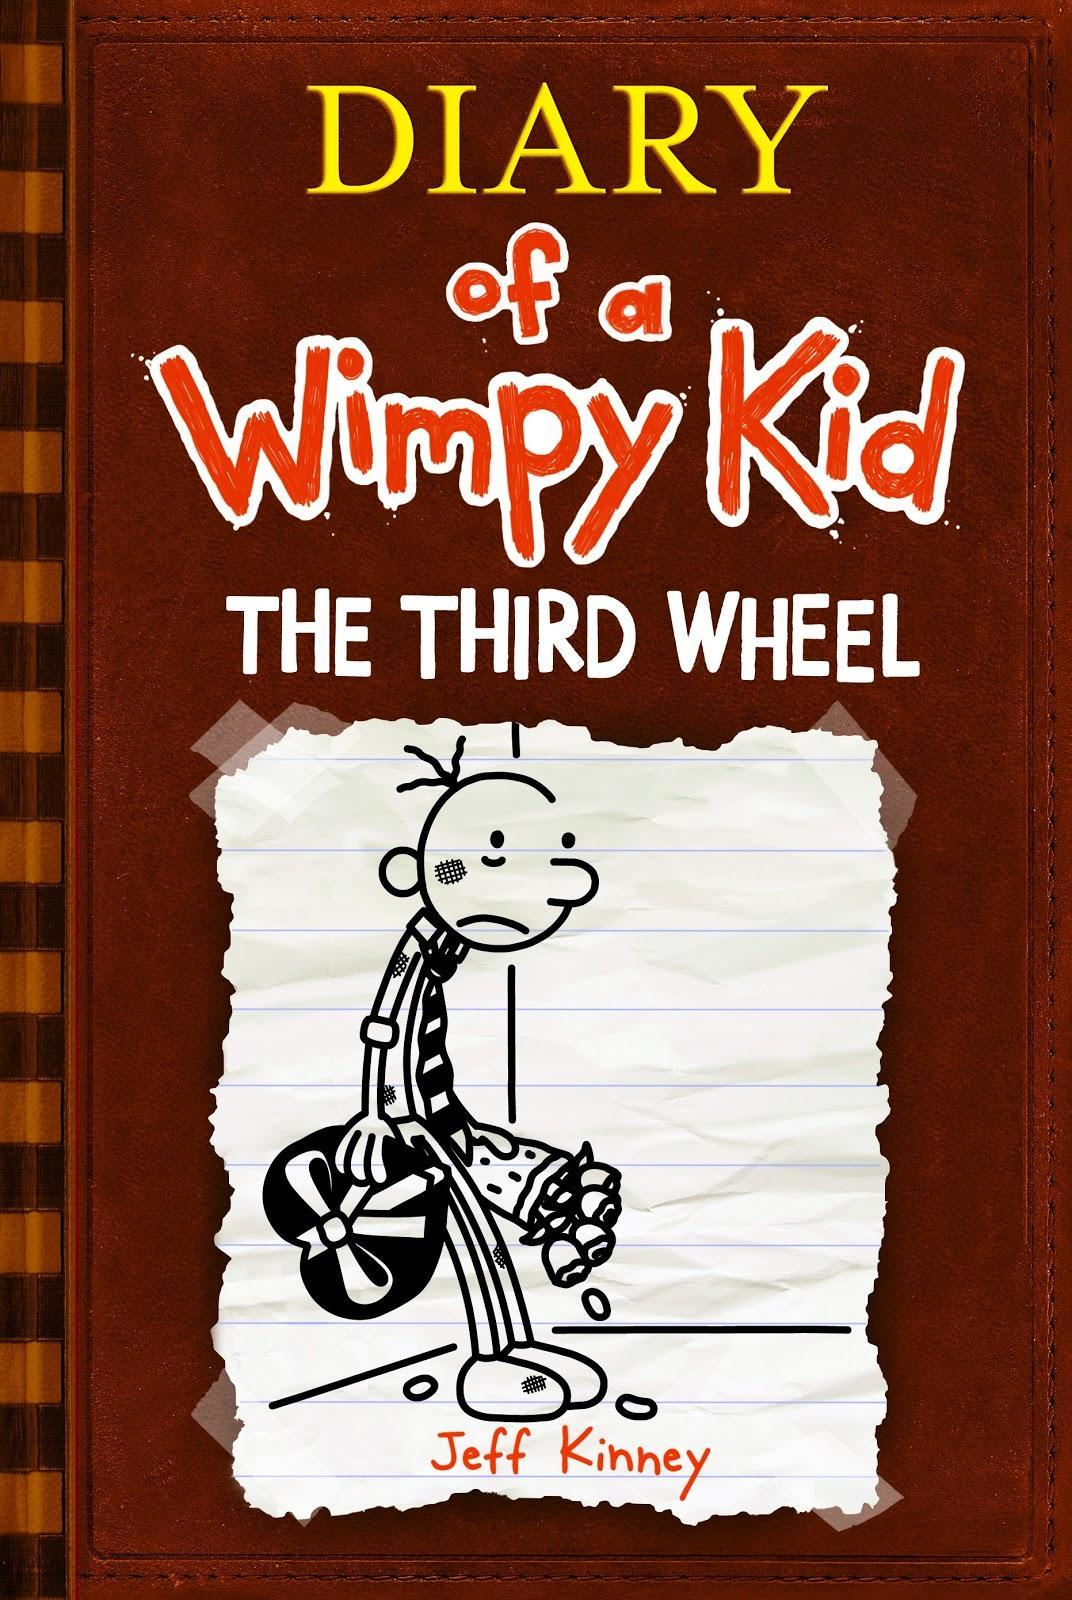 DIARY of a Wimpy Kid: THE THIRD WHEEL|||How well do you know it?